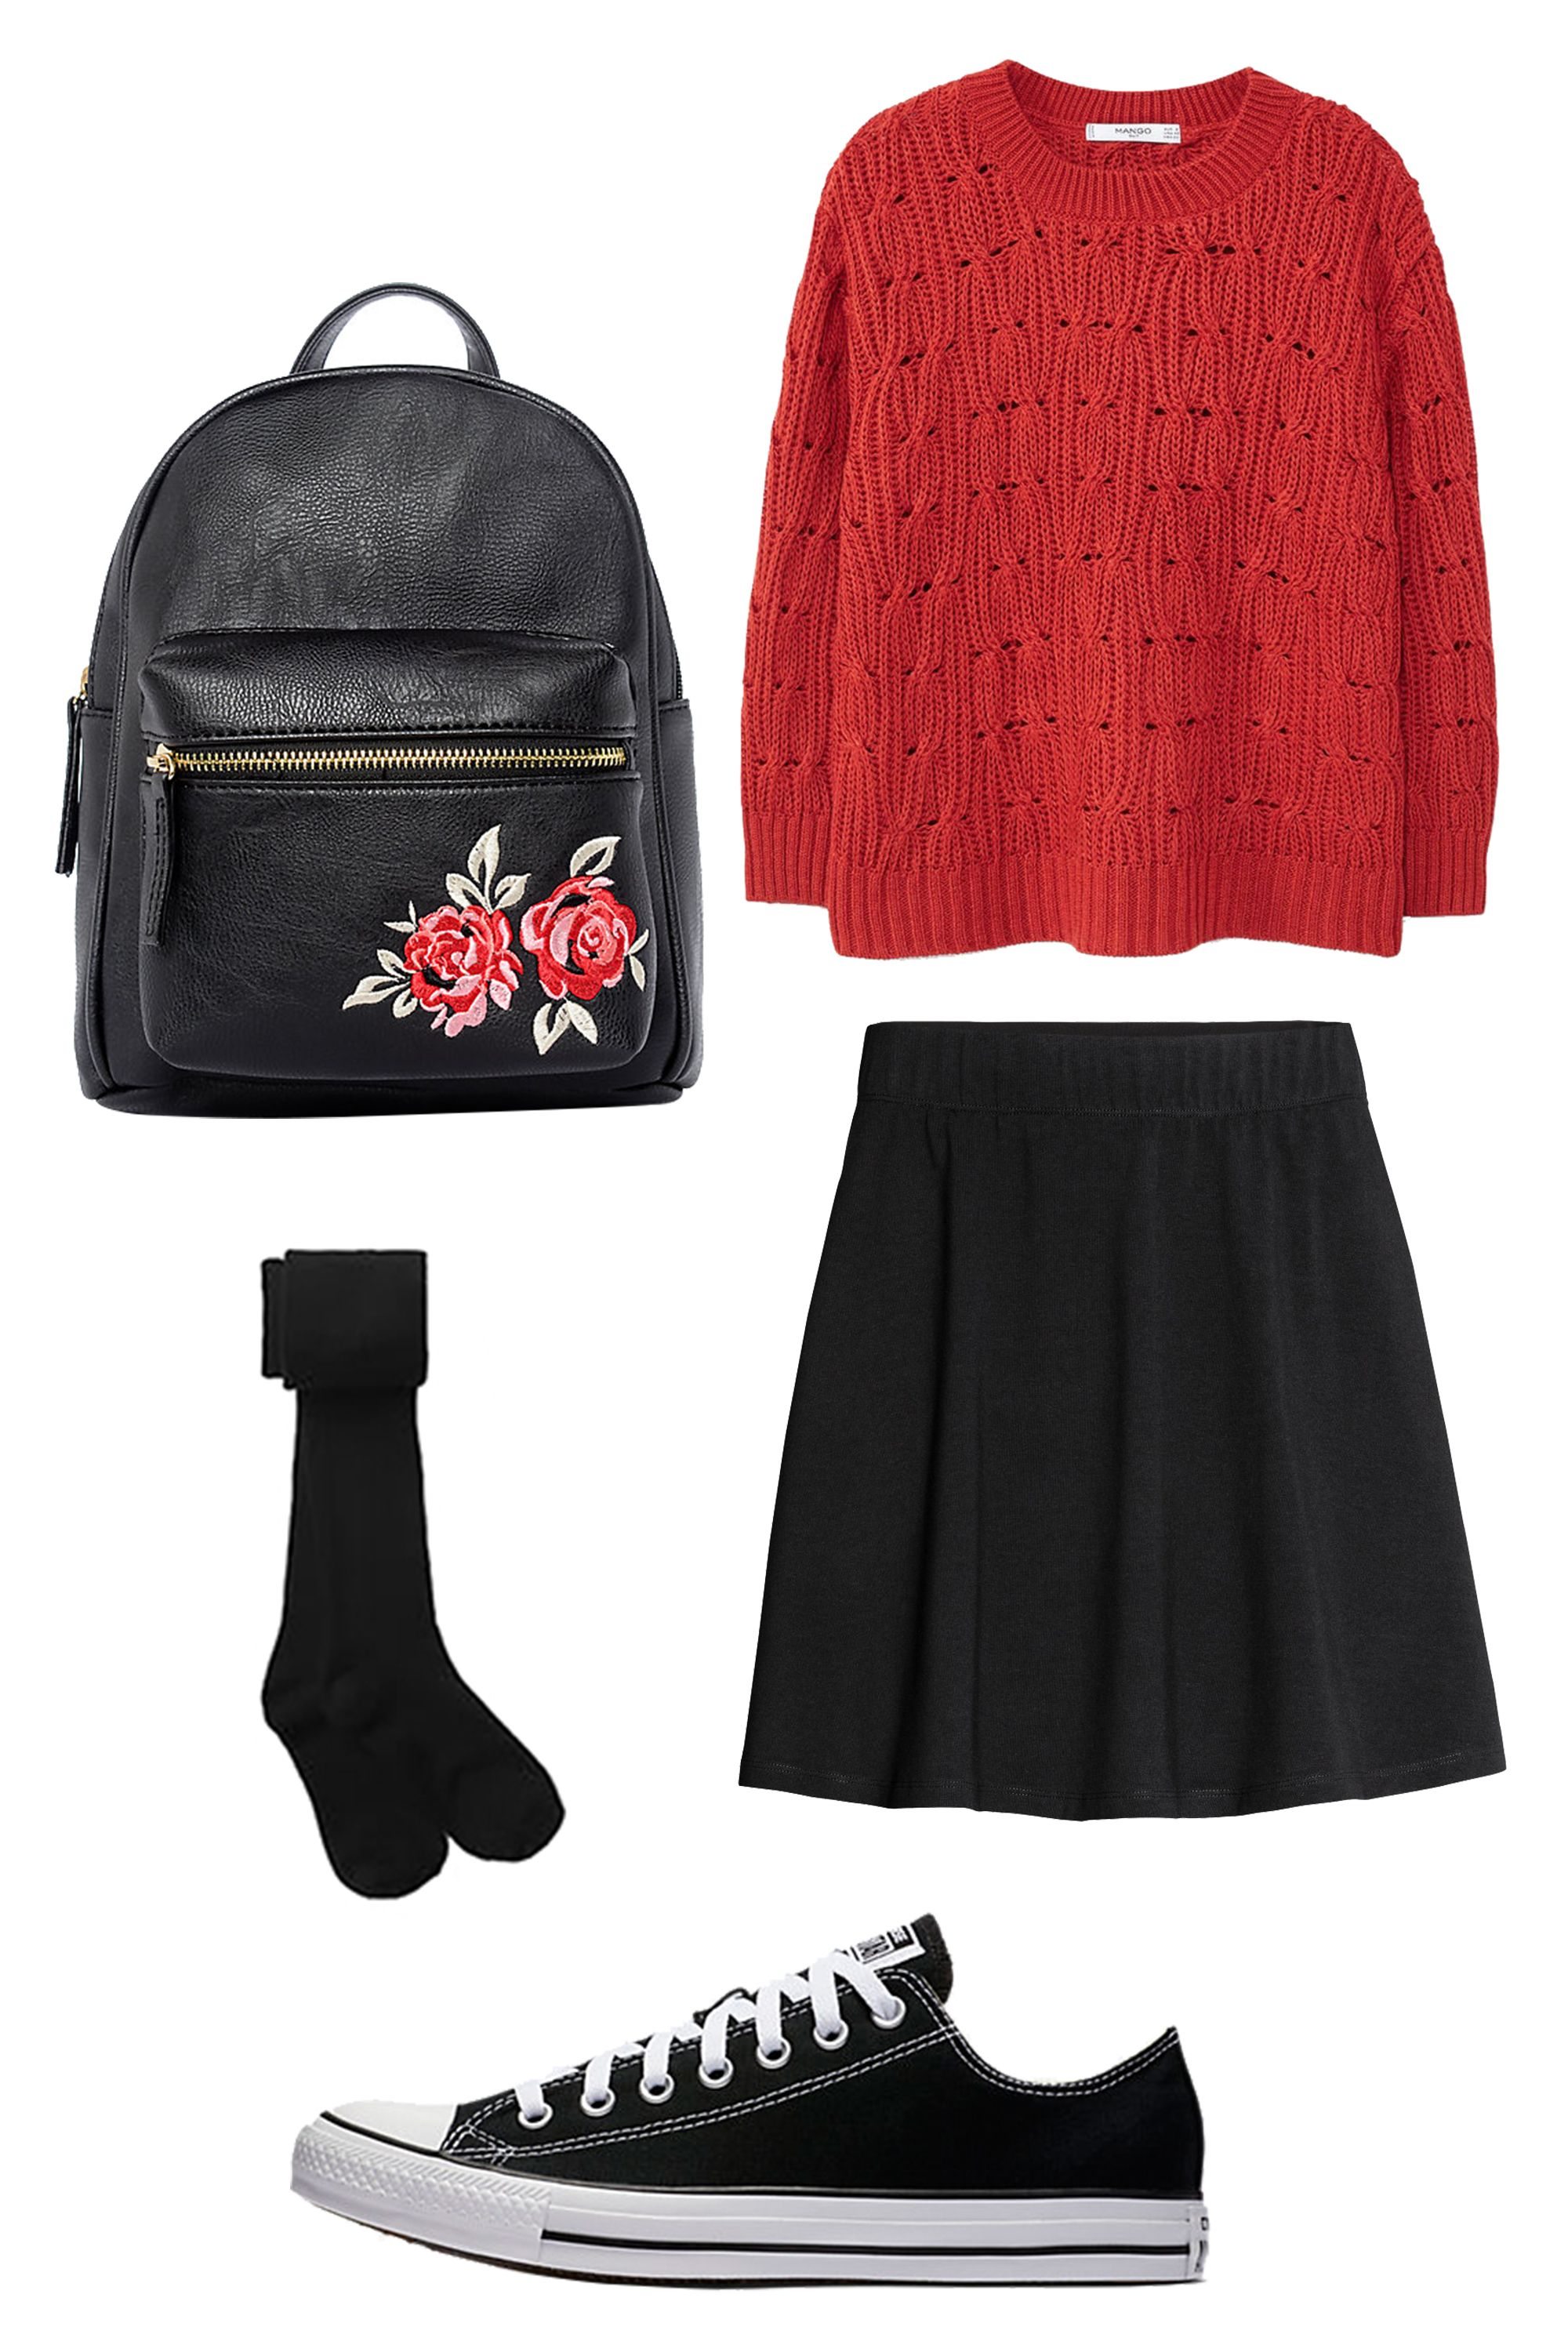 ea9ad4acb1 Valentine's Day Outfits - 10 V-Day Looks